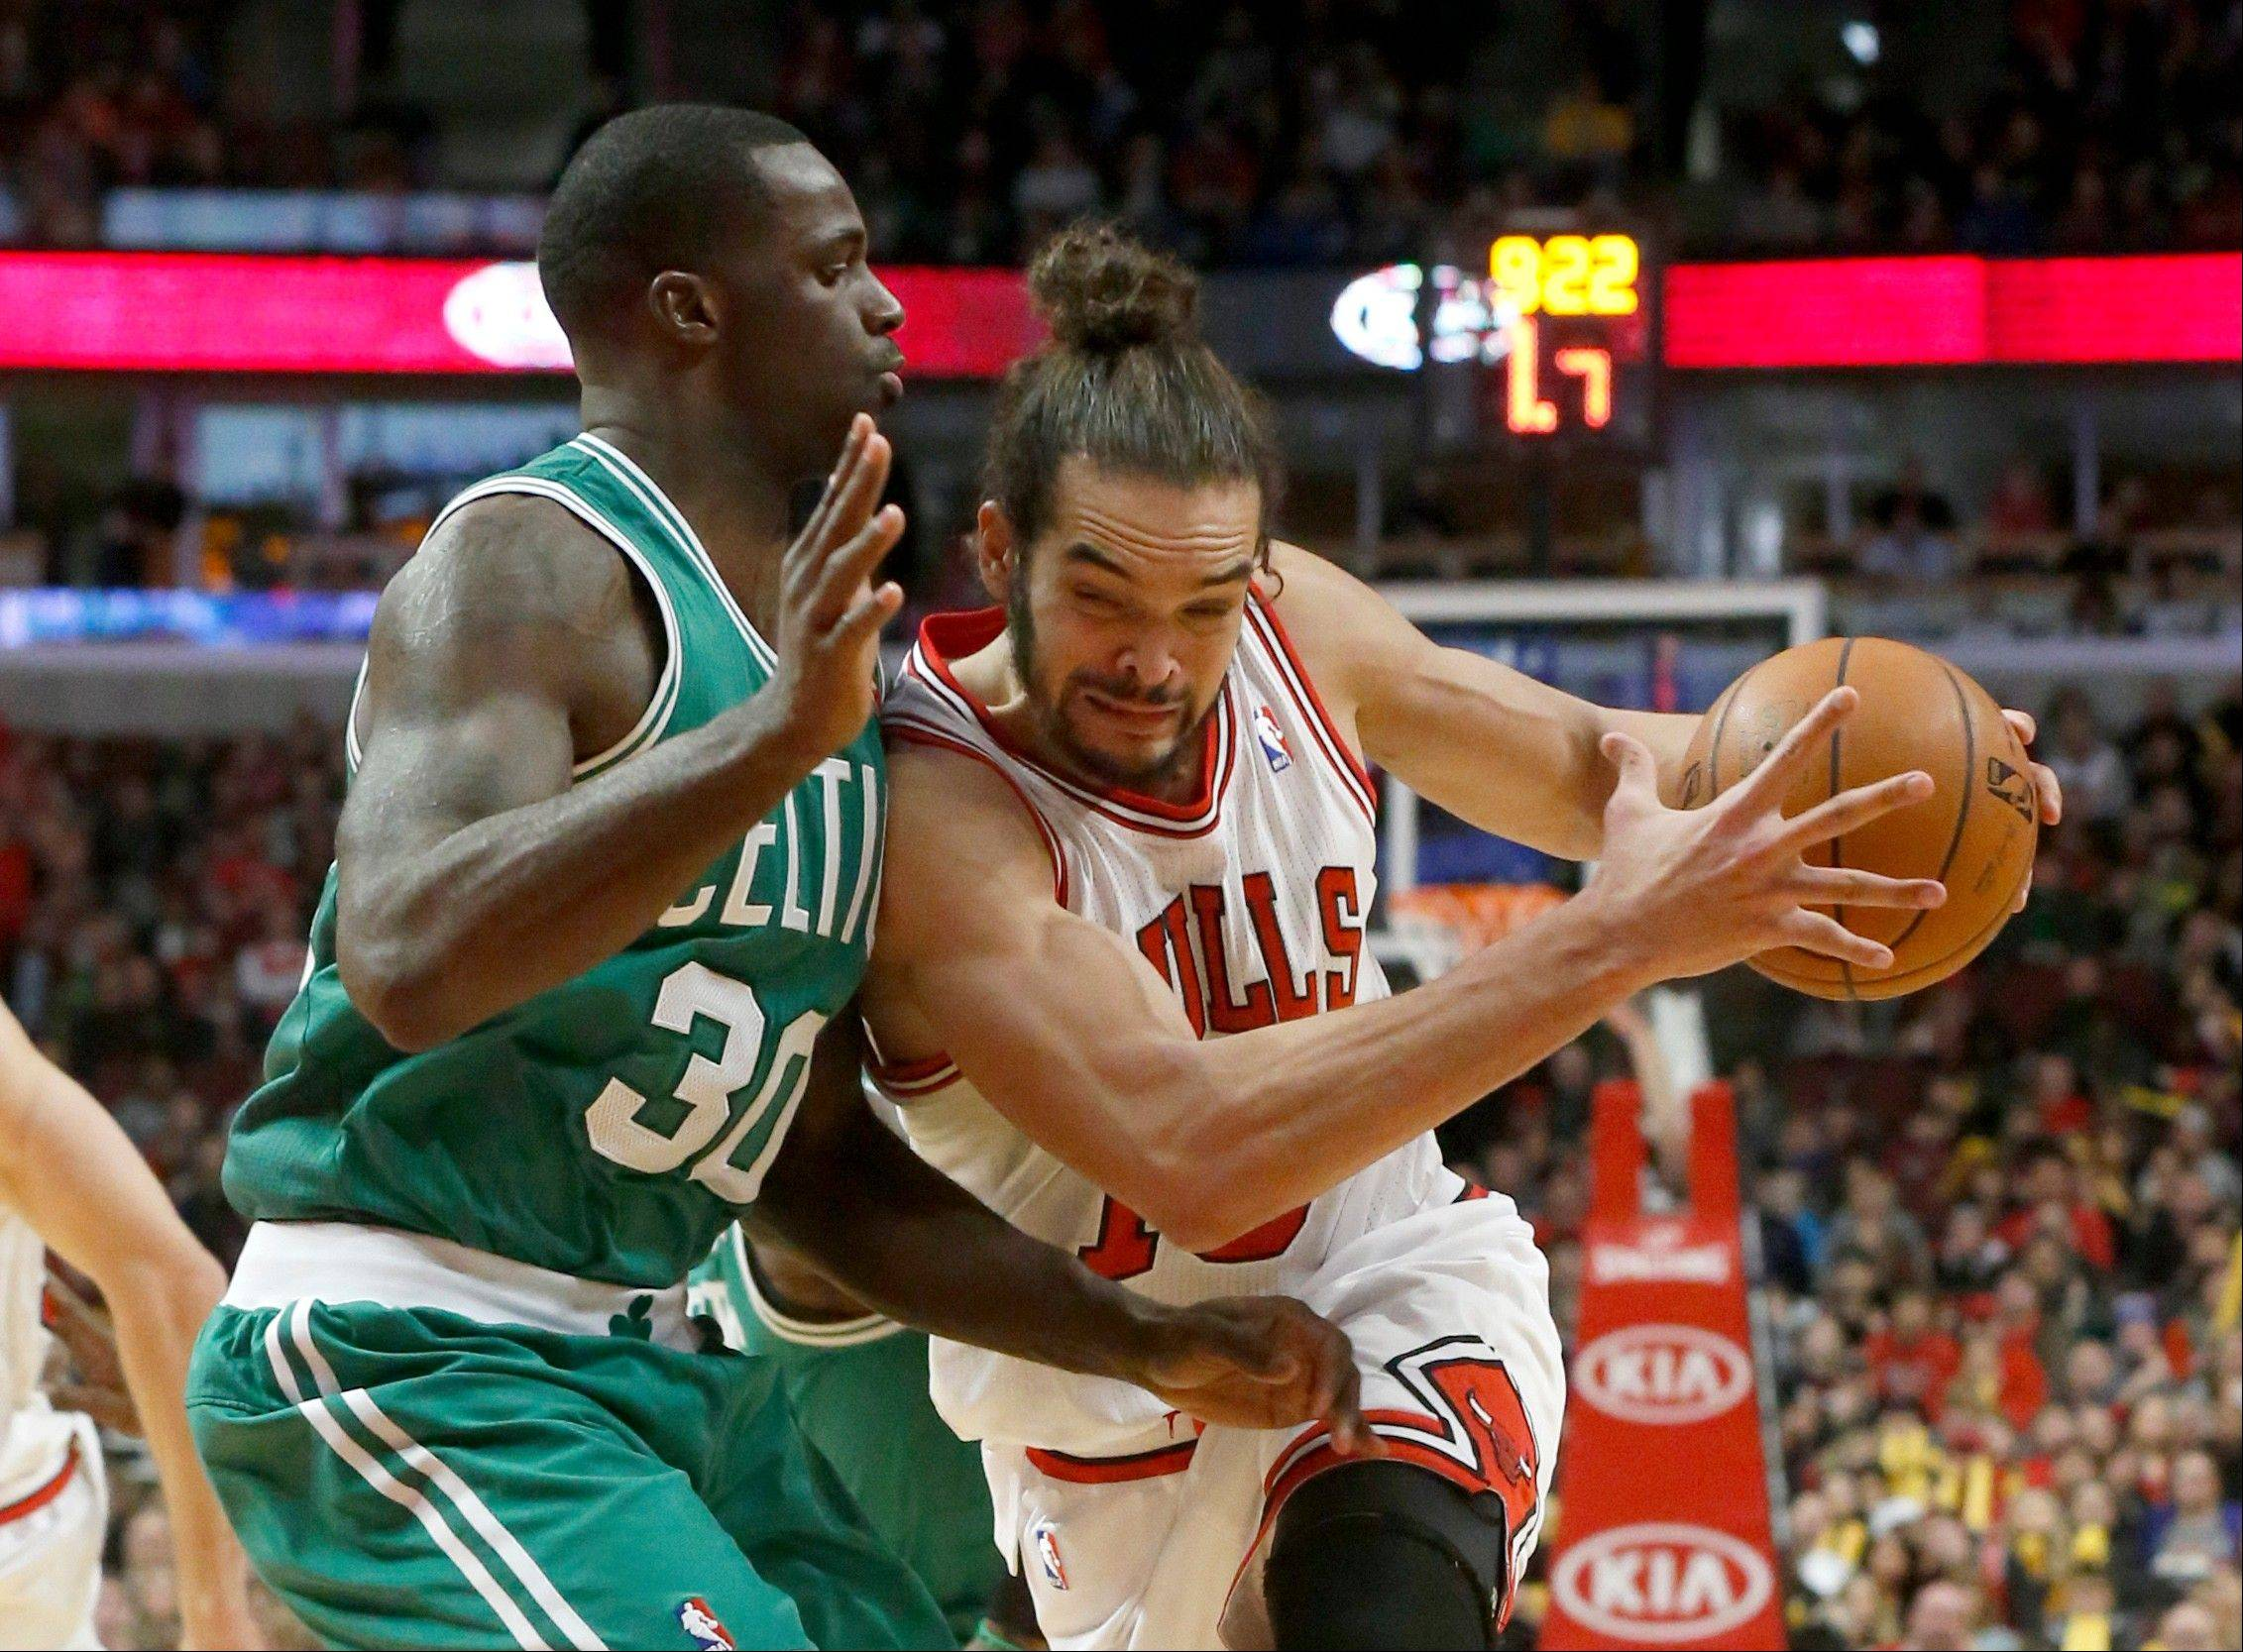 Dunleavy's anger gets Bulls fired up